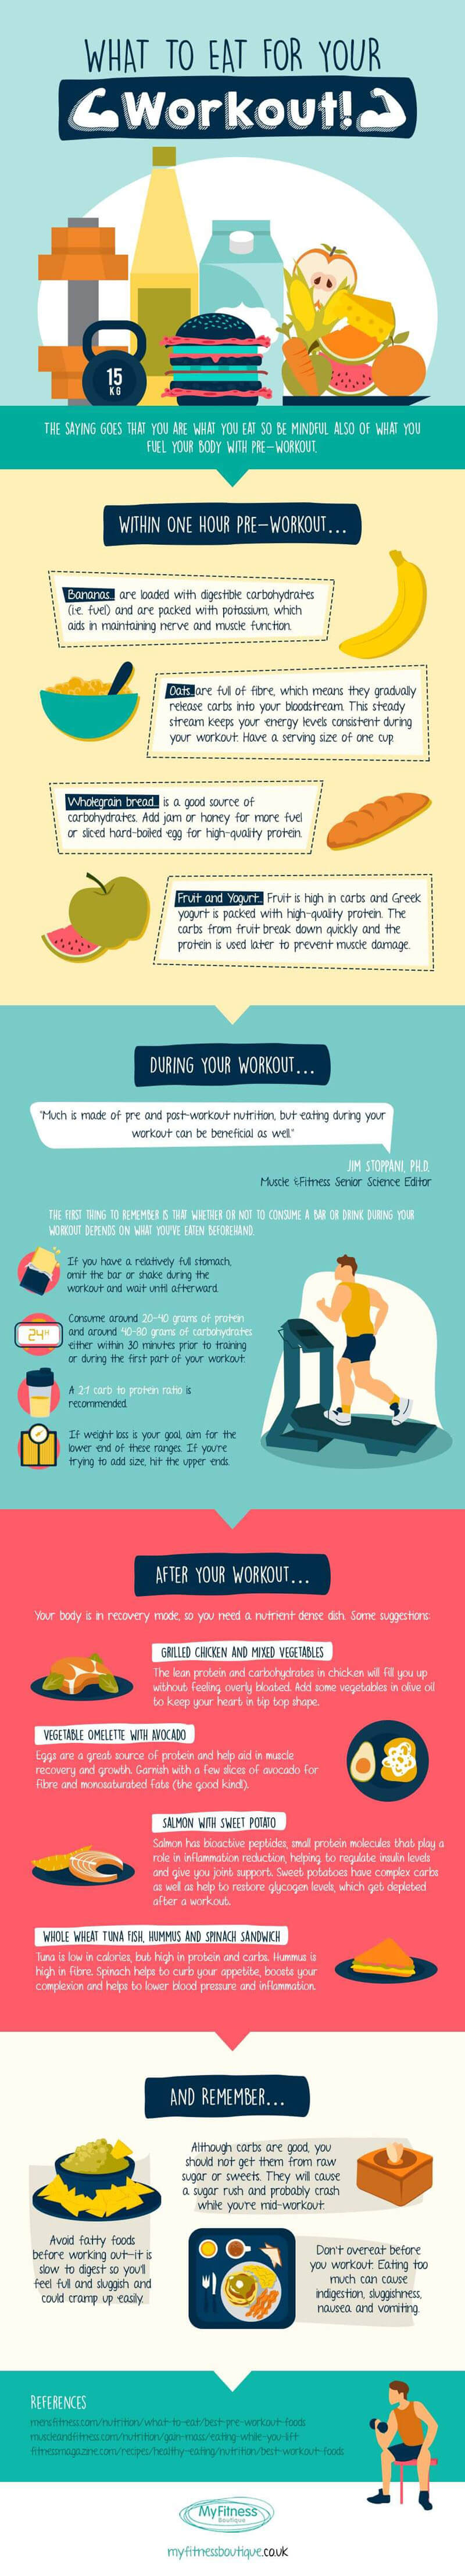 Workout-Food-Infographic12